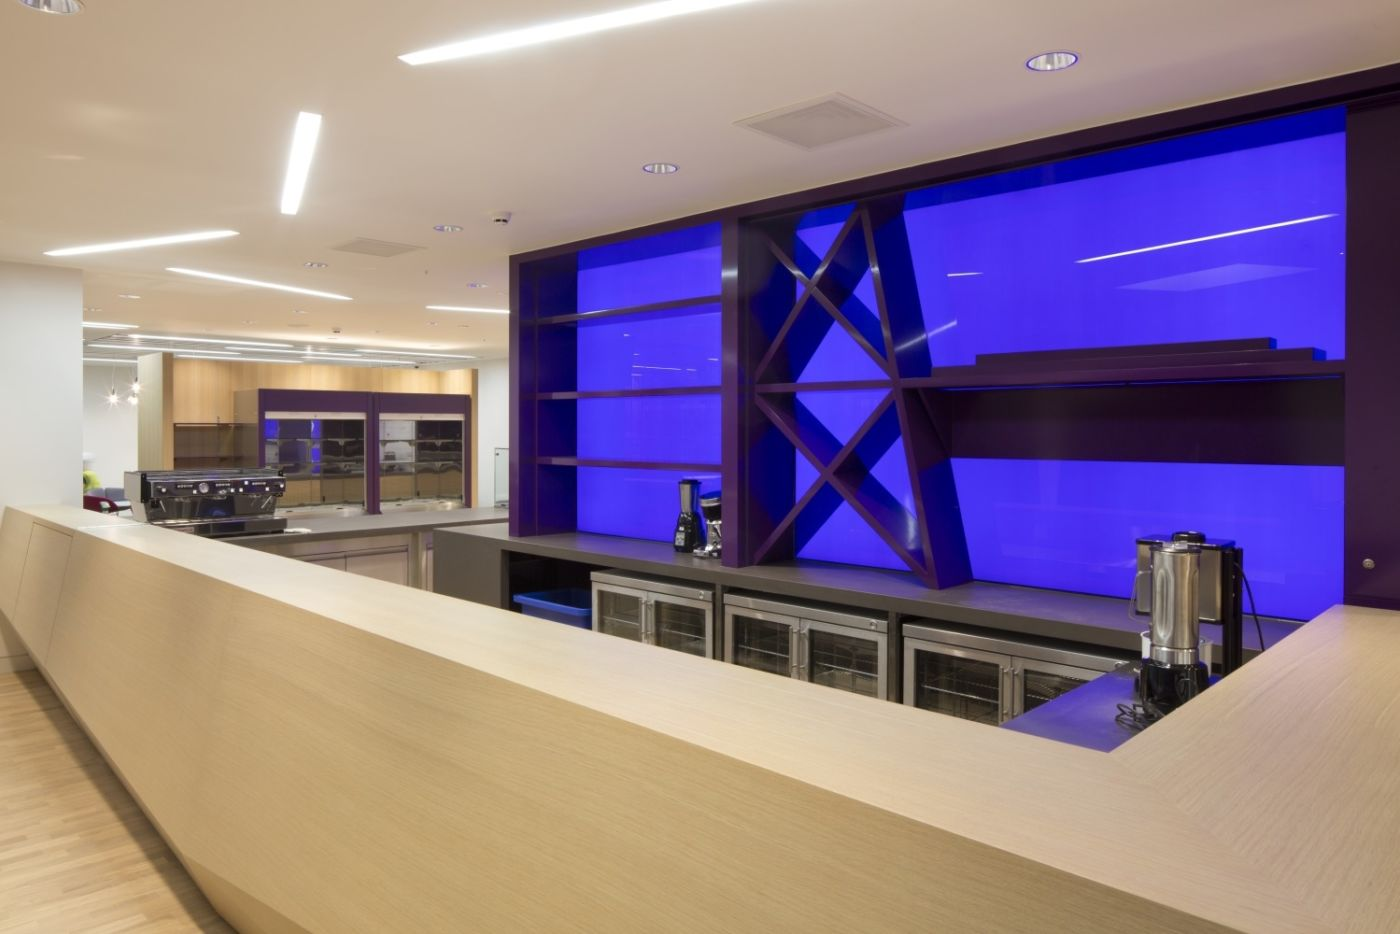 Coffee and drinks bar with purple and blue wall detailing